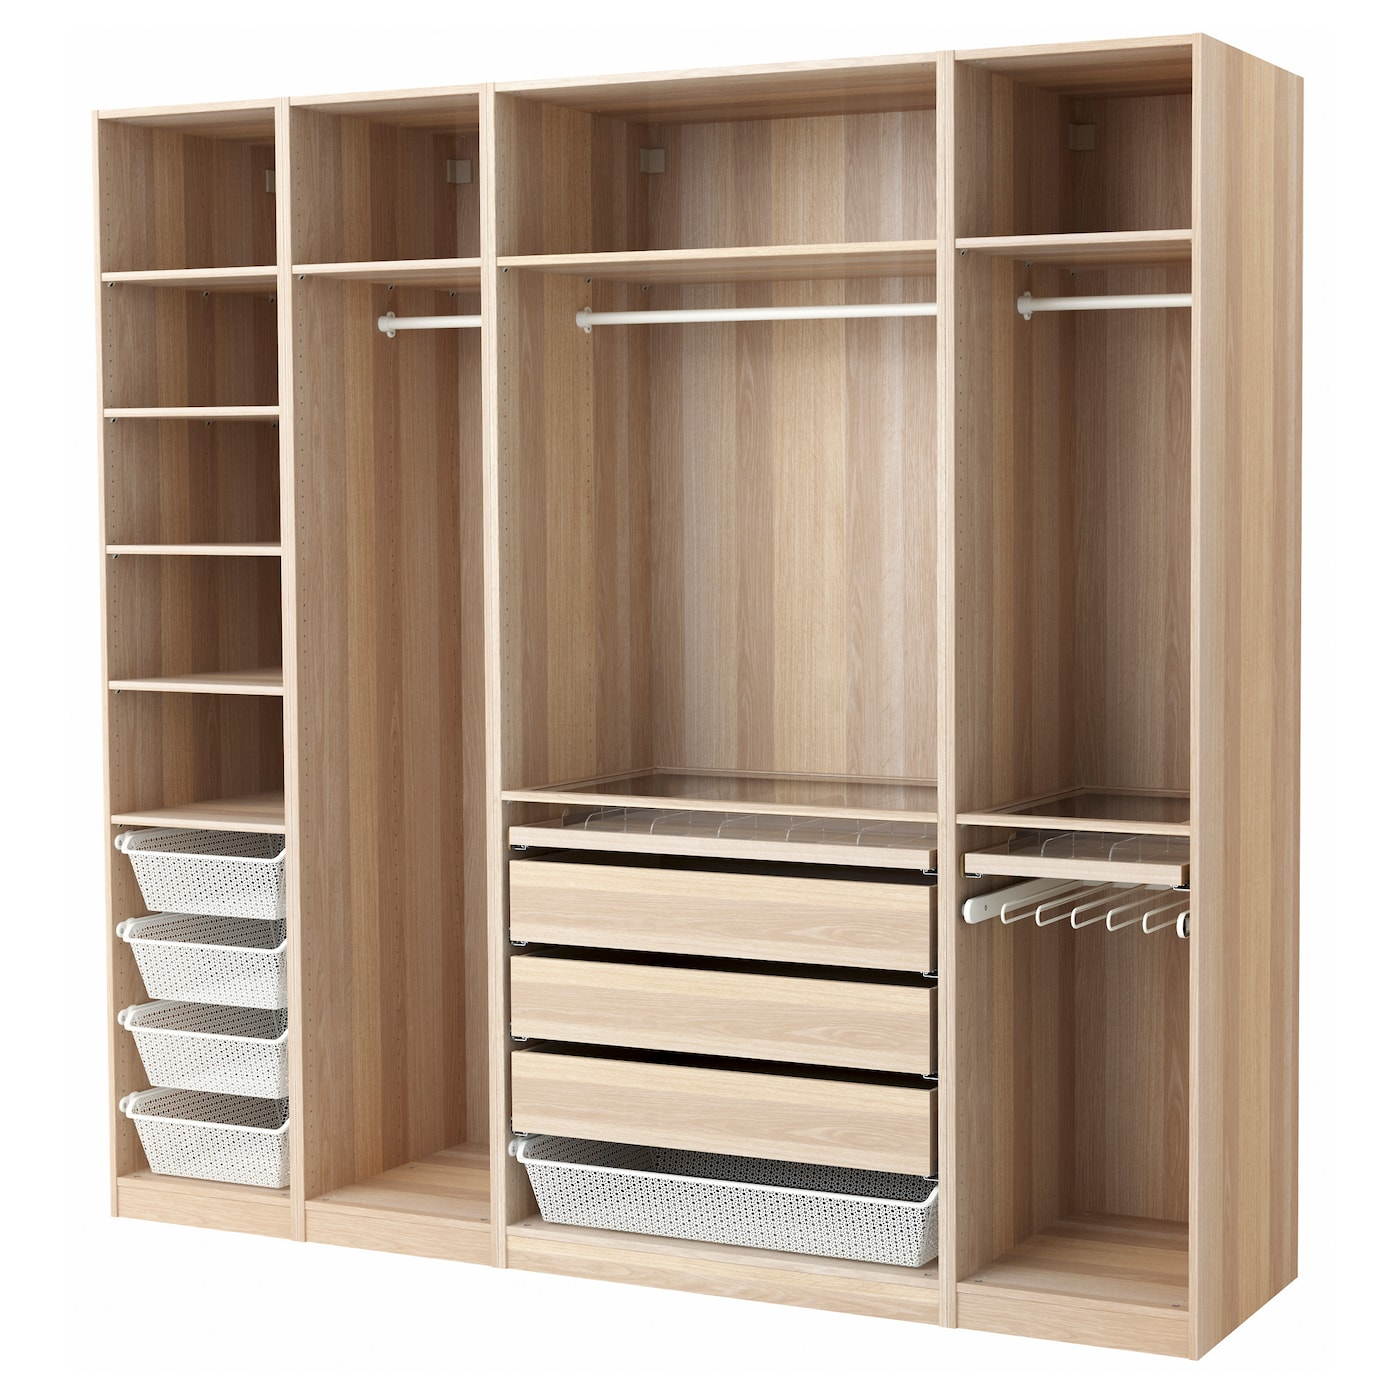 pax wardrobe white stained oak effect 250x58x236 cm ikea. Black Bedroom Furniture Sets. Home Design Ideas